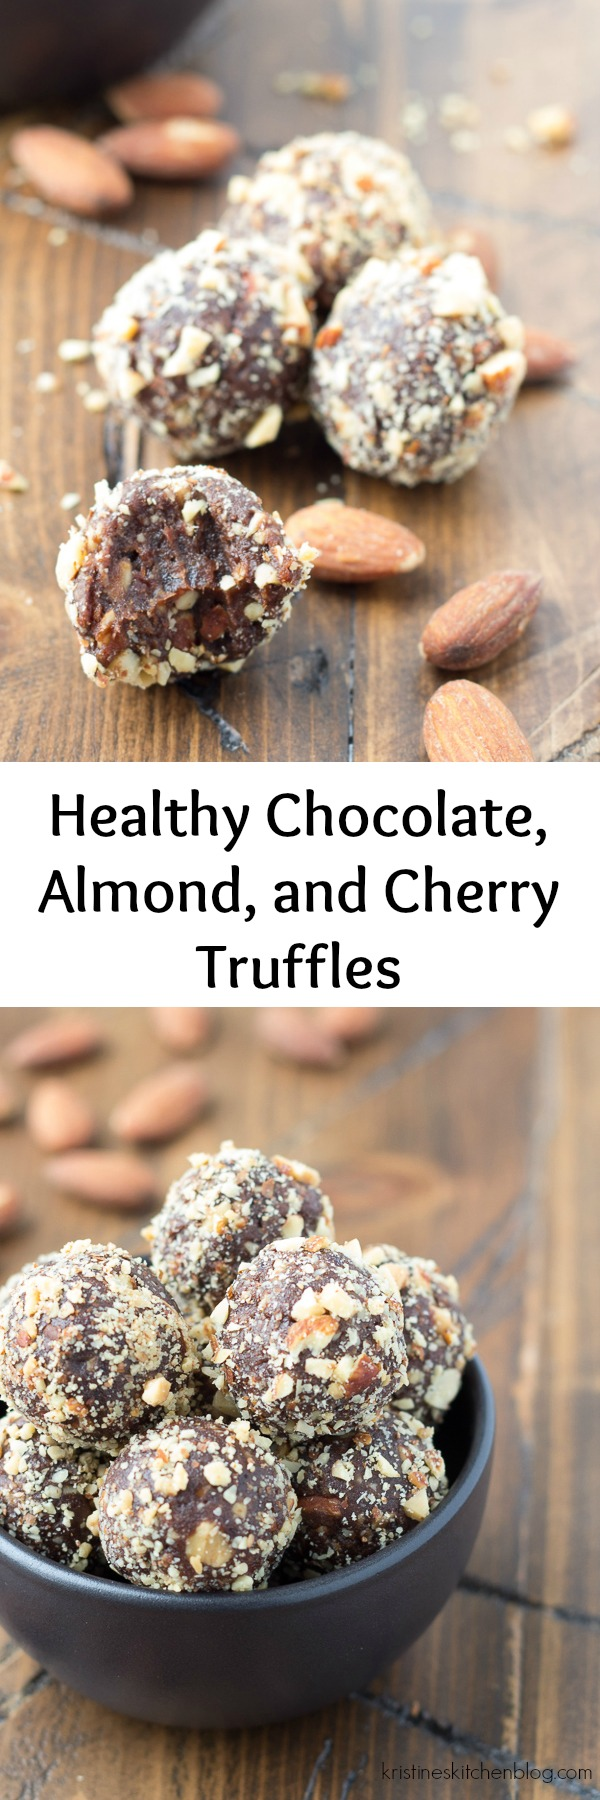 These Chocolate, Almond, and Cherry Truffles are made with just 5 ingredients, including dates and dried cherries. I like to snack on these healthy cocoa truffles when a sweets craving hits! A healthier treat for your Christmas dessert table!